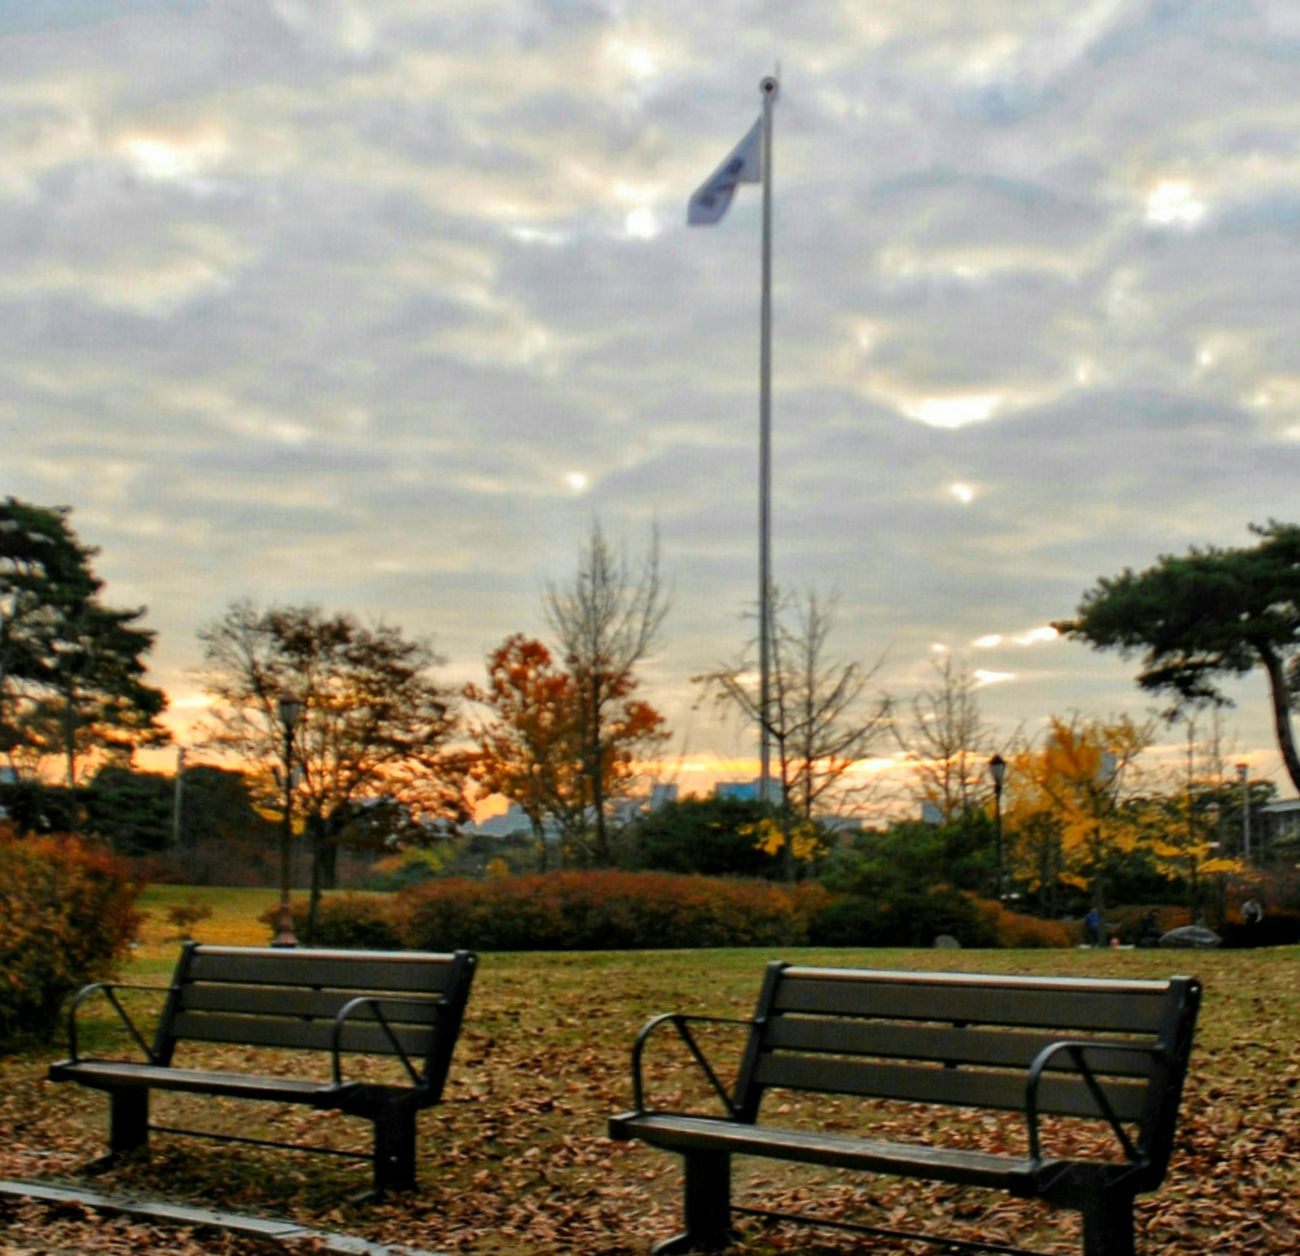 Leaving the memories of autumn once again... Autumn Sunset Memories Chairs Korea Waiting For Winter Leaving Memories